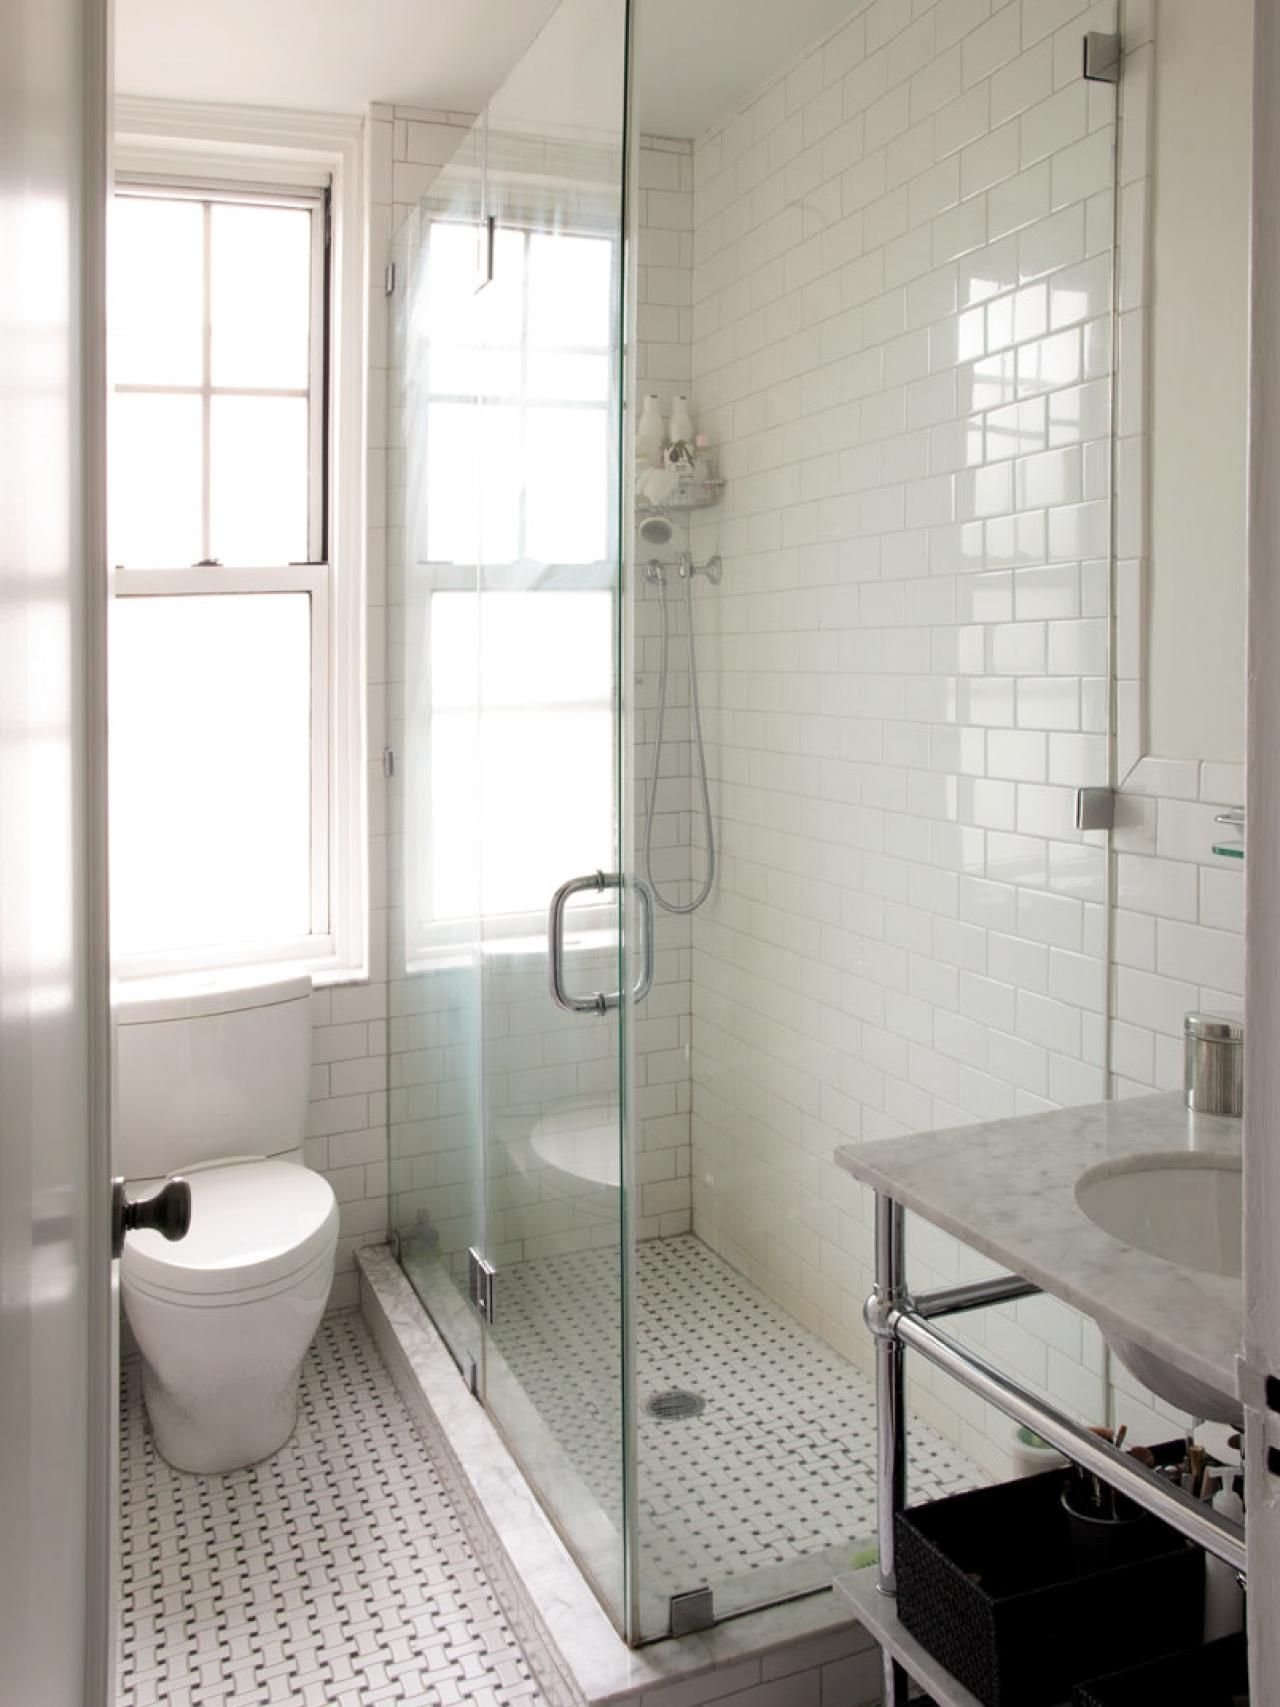 i like the marble sink and the floor Clean white subway tile lining ...